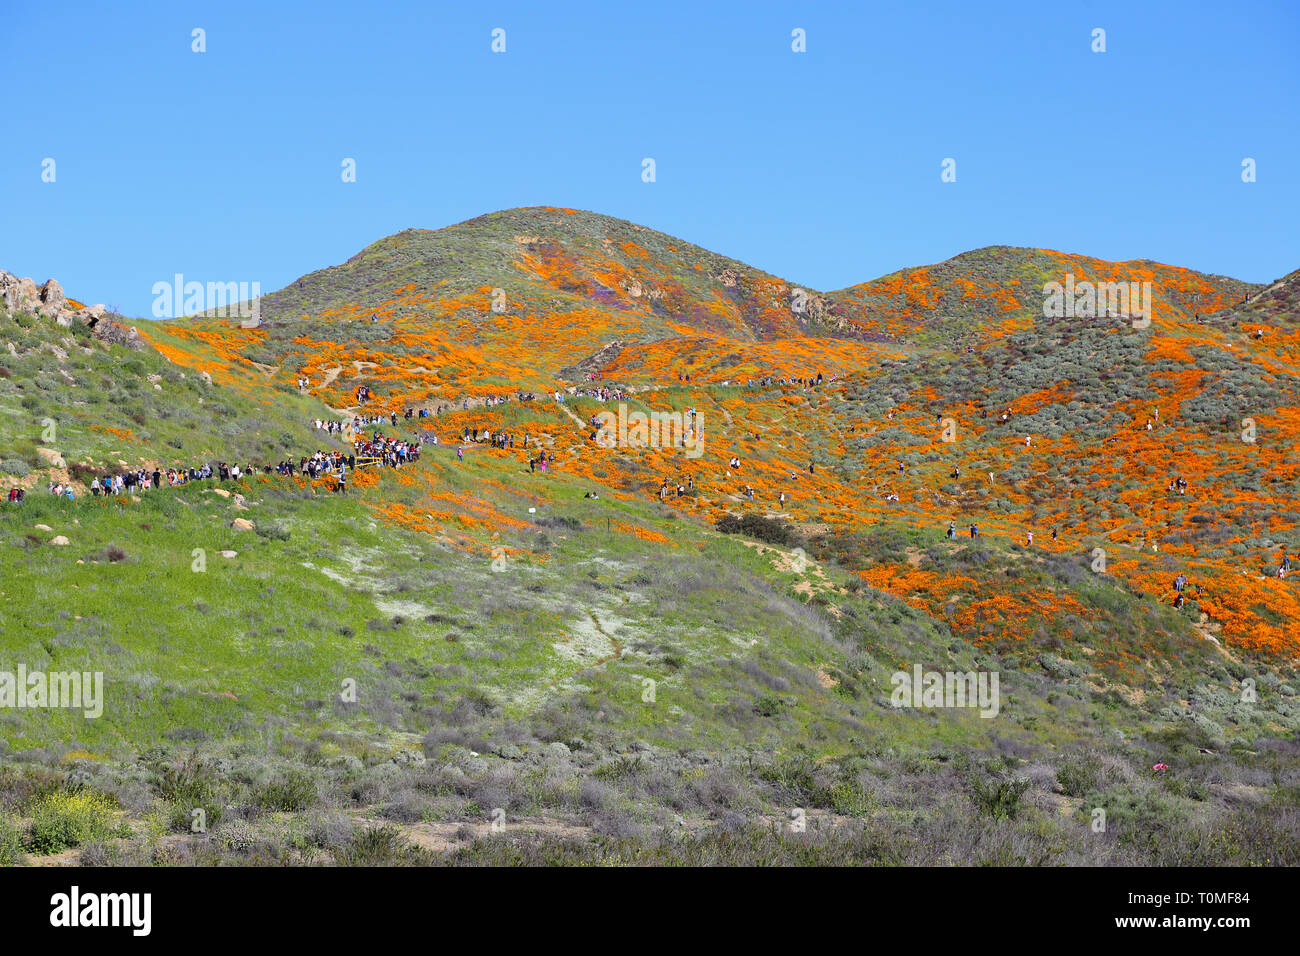 Lake Elsinore, CA / USA - March 16, 2019: In a wide view, a large crowd is shown visiting the orange poppy wildflower super bloom at Walker Canyon. Th - Stock Image